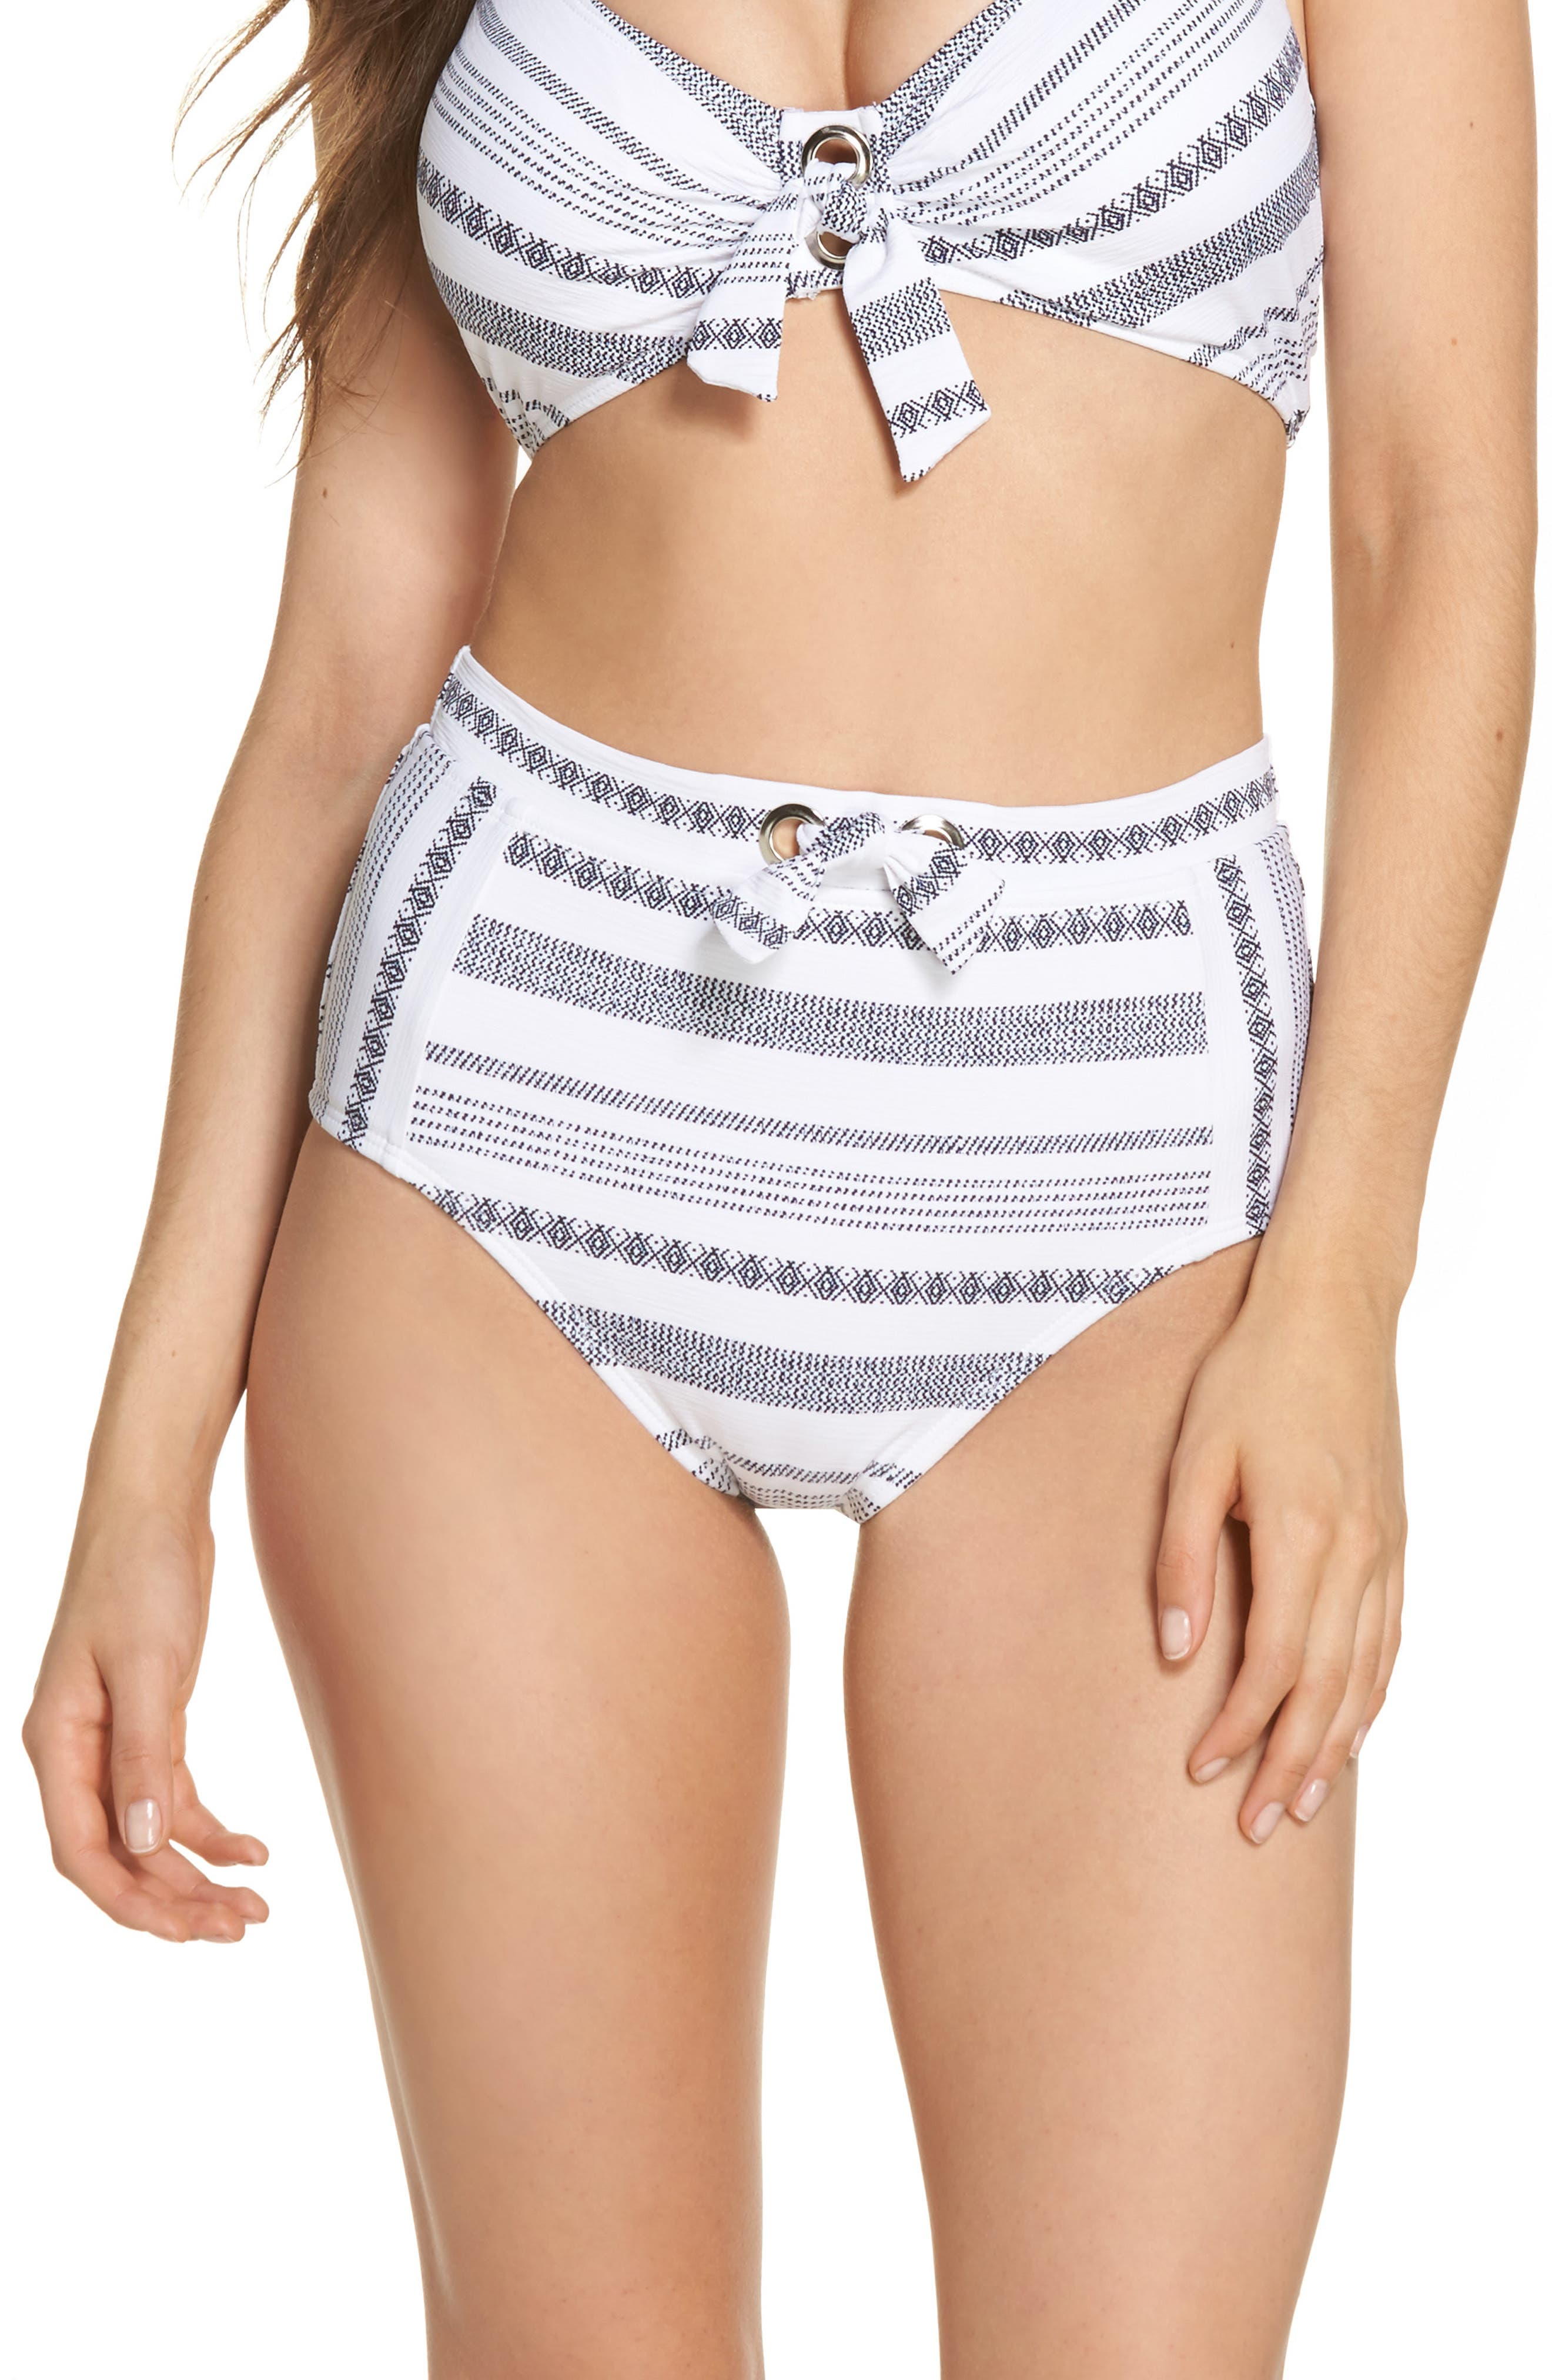 Sand Bar High Waist Bikini Bottoms,                         Main,                         color, White